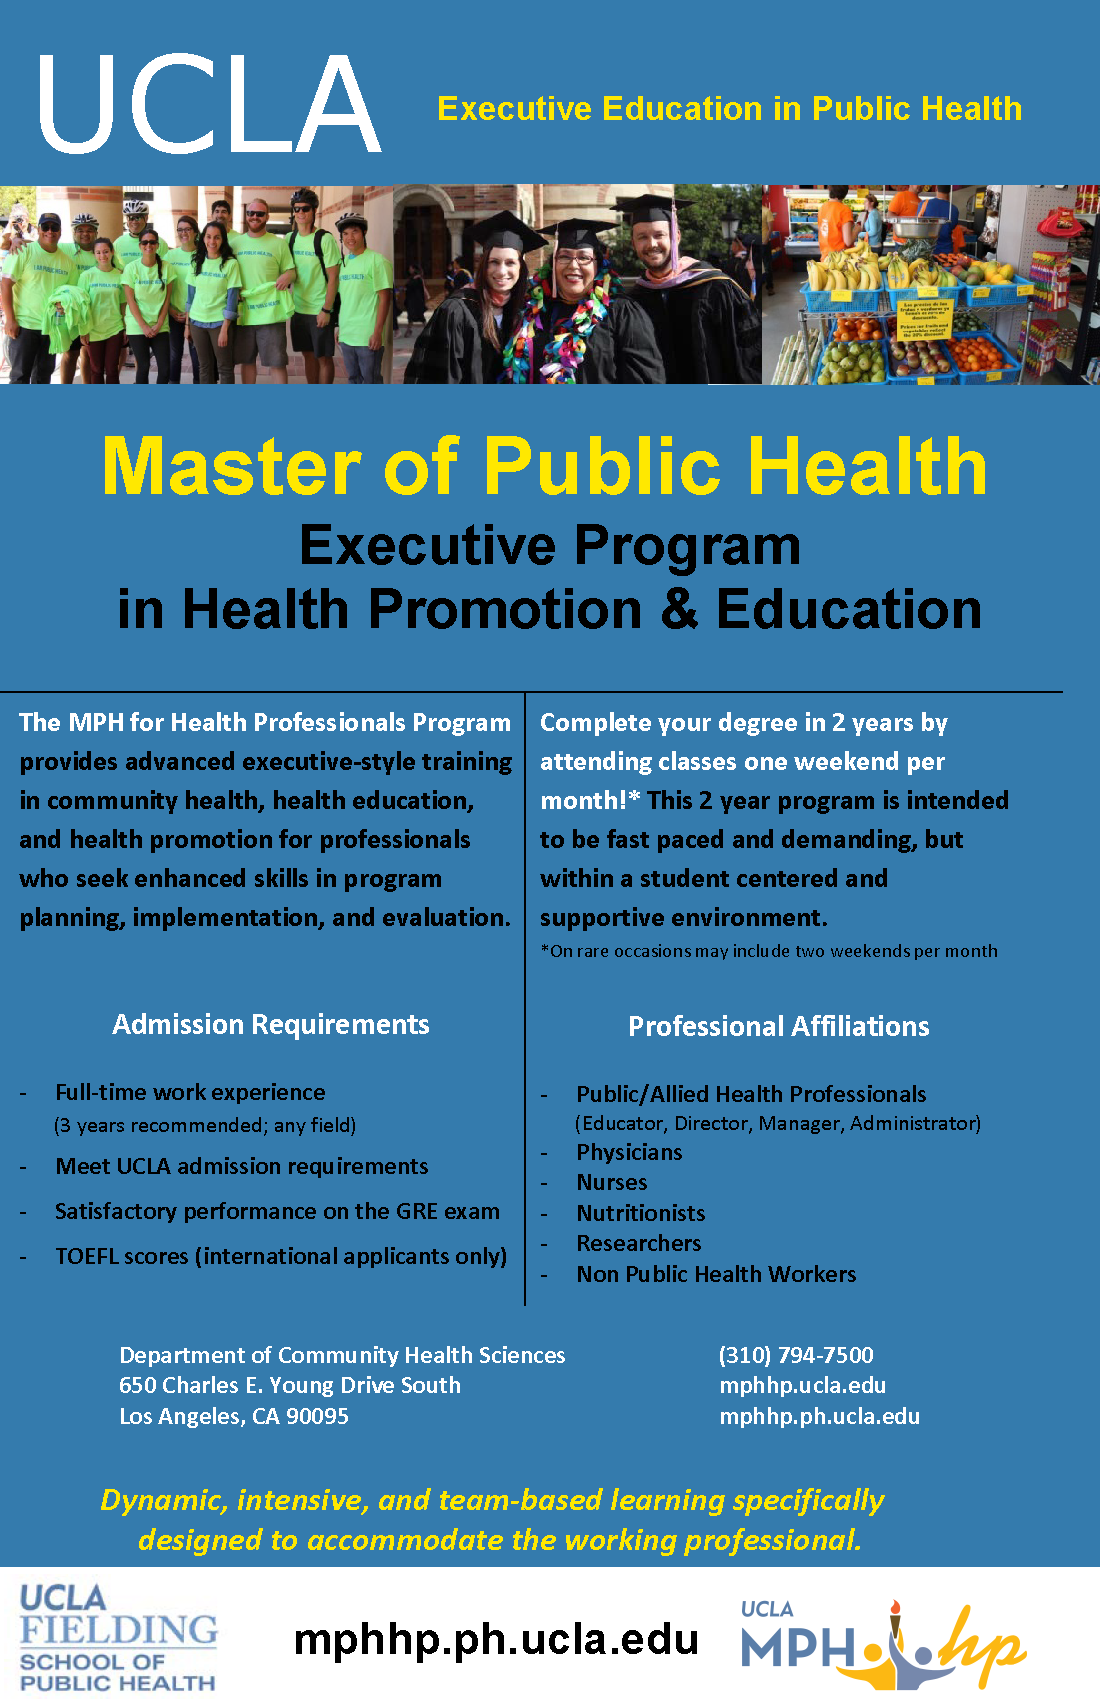 mph for health professionals community health sciences ucla s master of public health for health professionals mph hp program is designed for working professionals seeking to attain leadership positions in